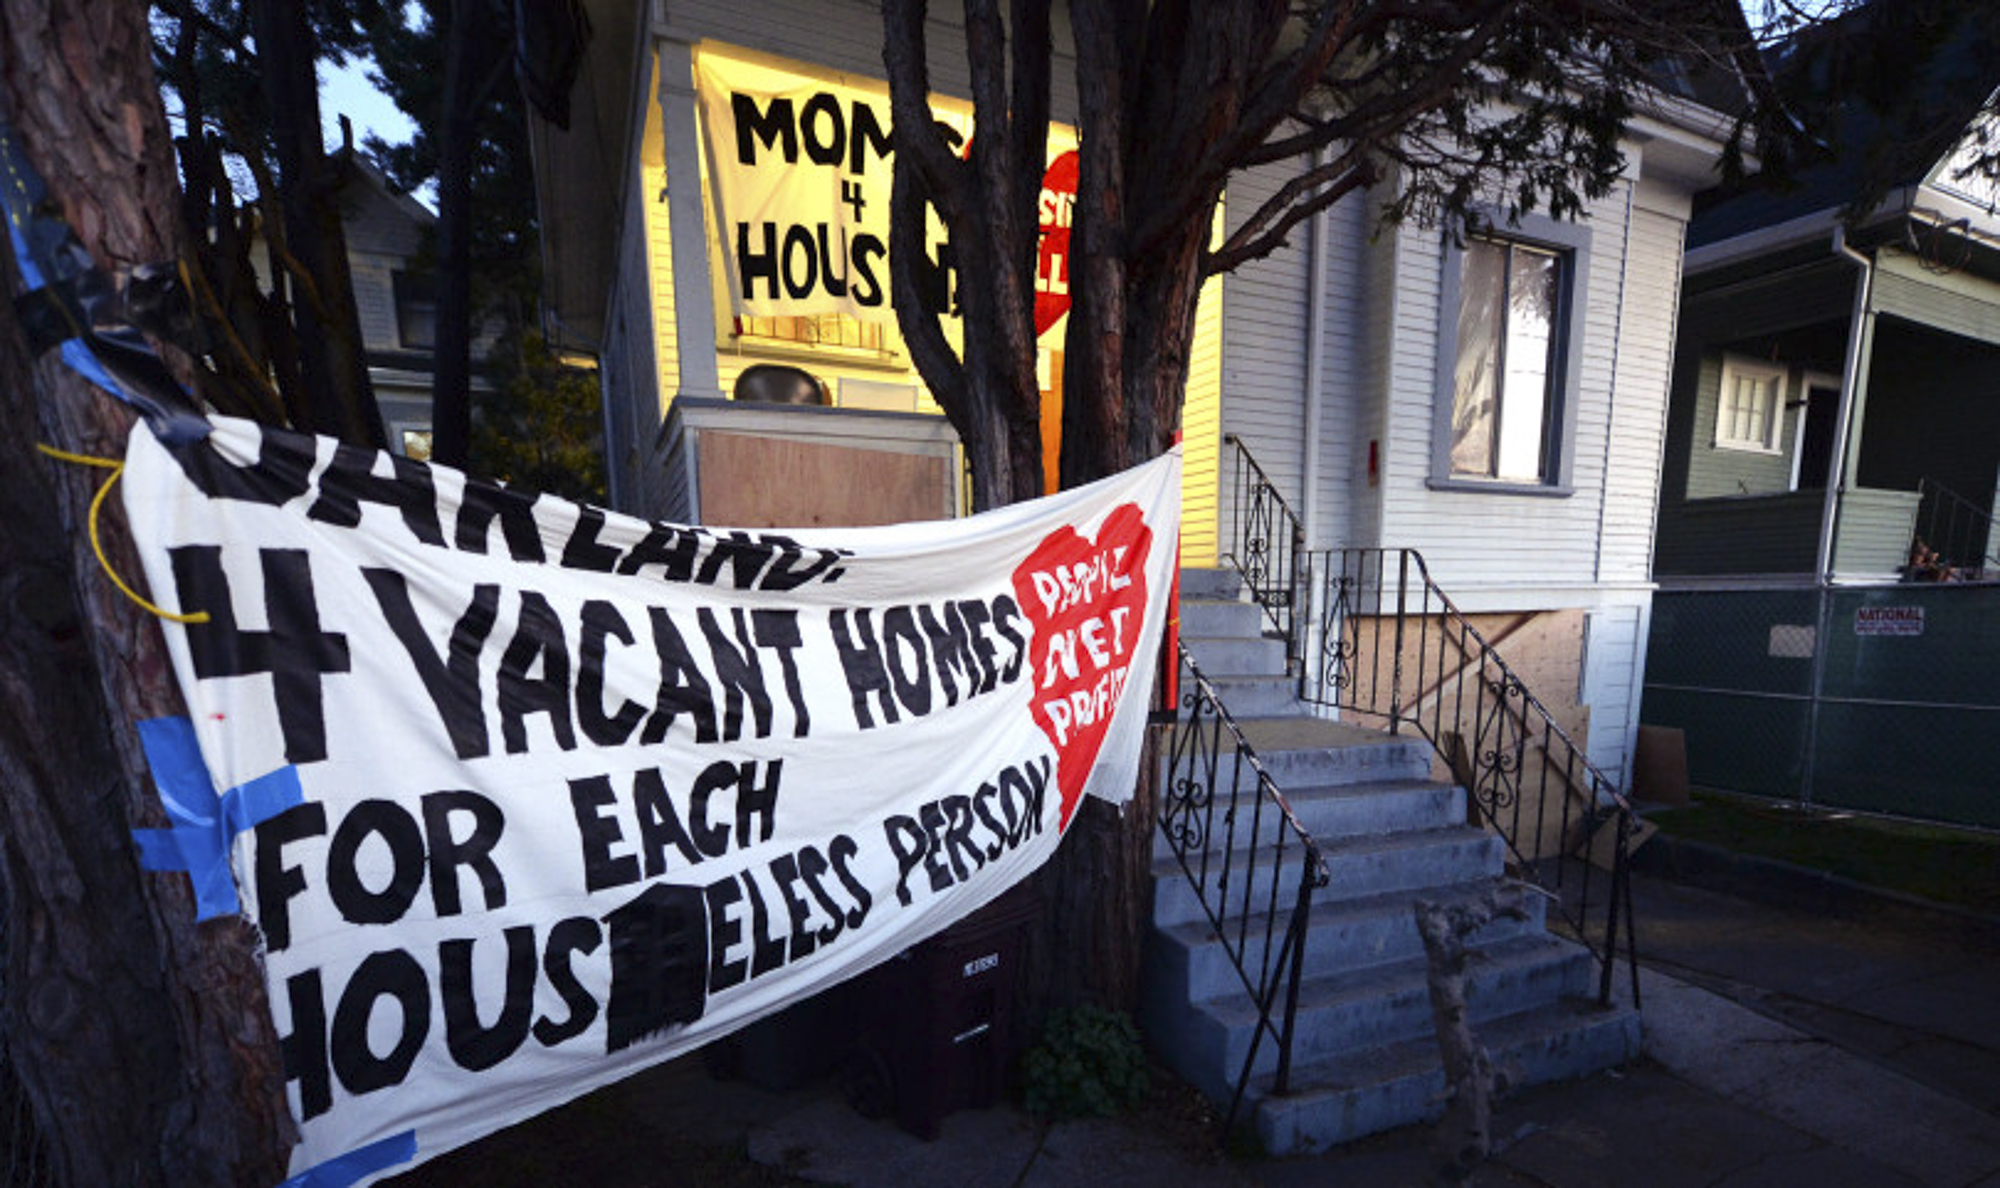 """The home that was illegally occupied by a group calling themselves """"Moms 4 Housing"""" is photographed after they were evicted in Oakland, Calif., on Tuesday, Jan. 14, 2020. Photo by Doug Duran, Bay Area News Group"""